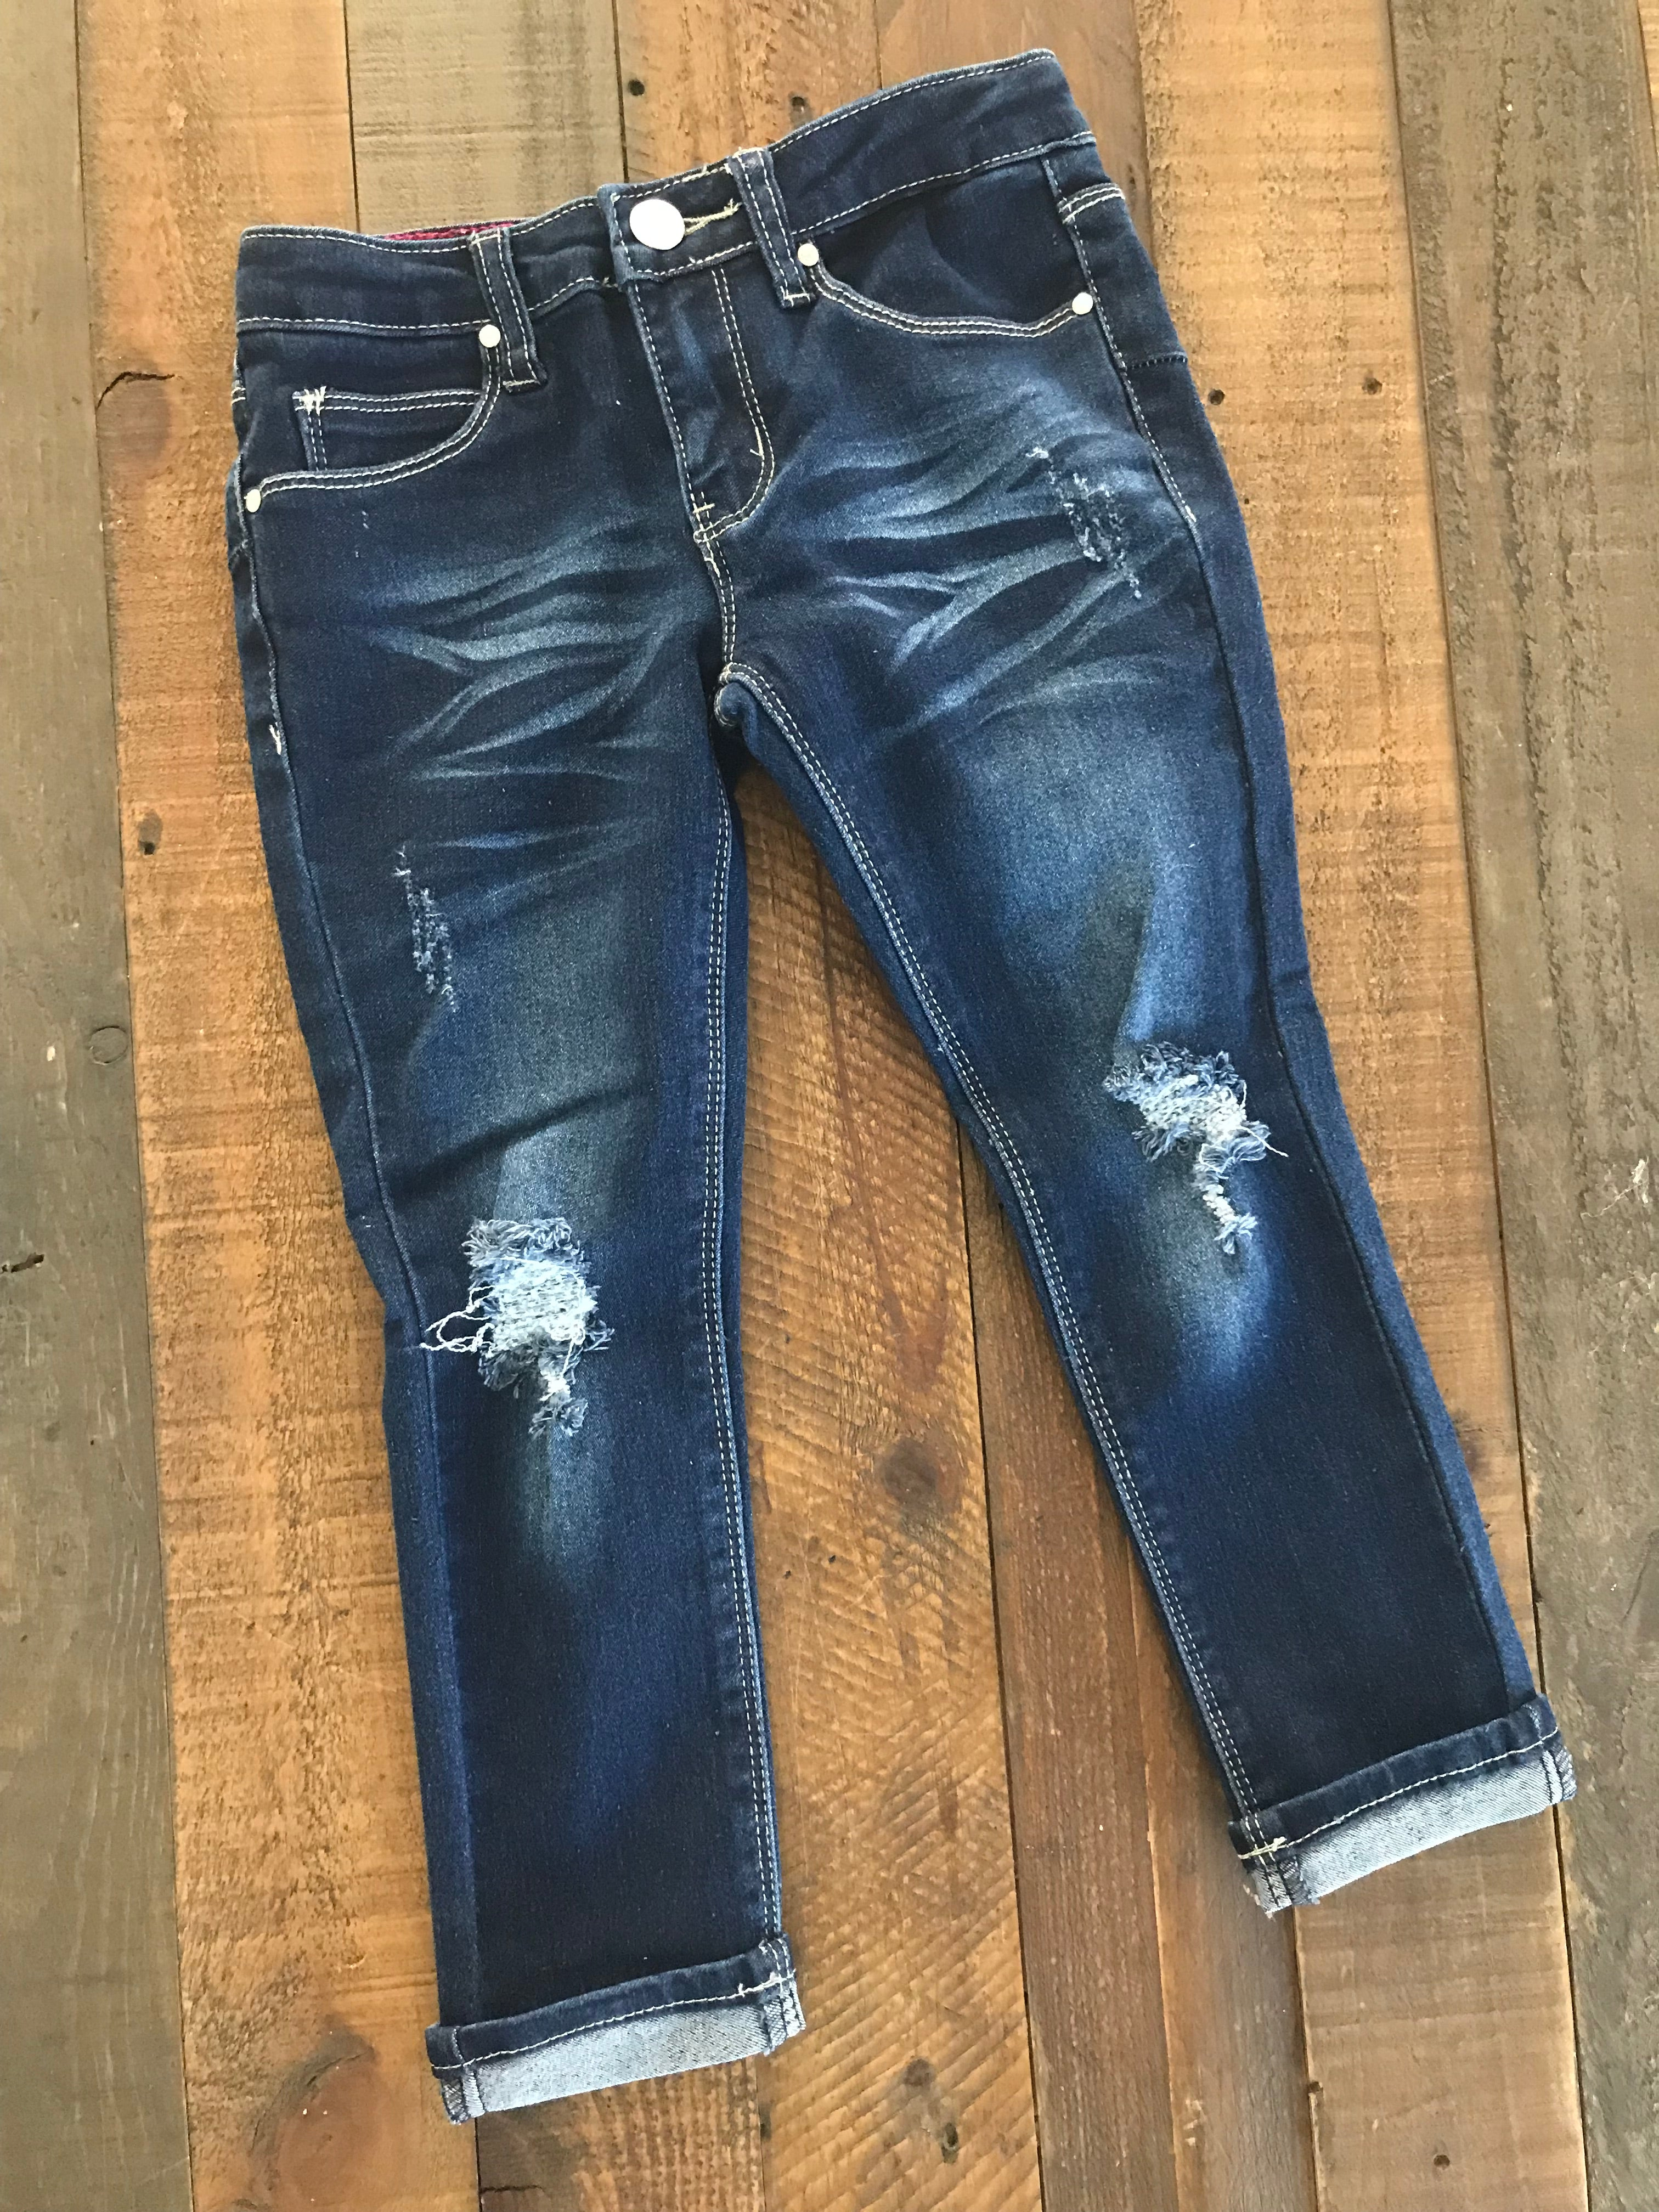 Emerson Distressed Jeans (4-6x)